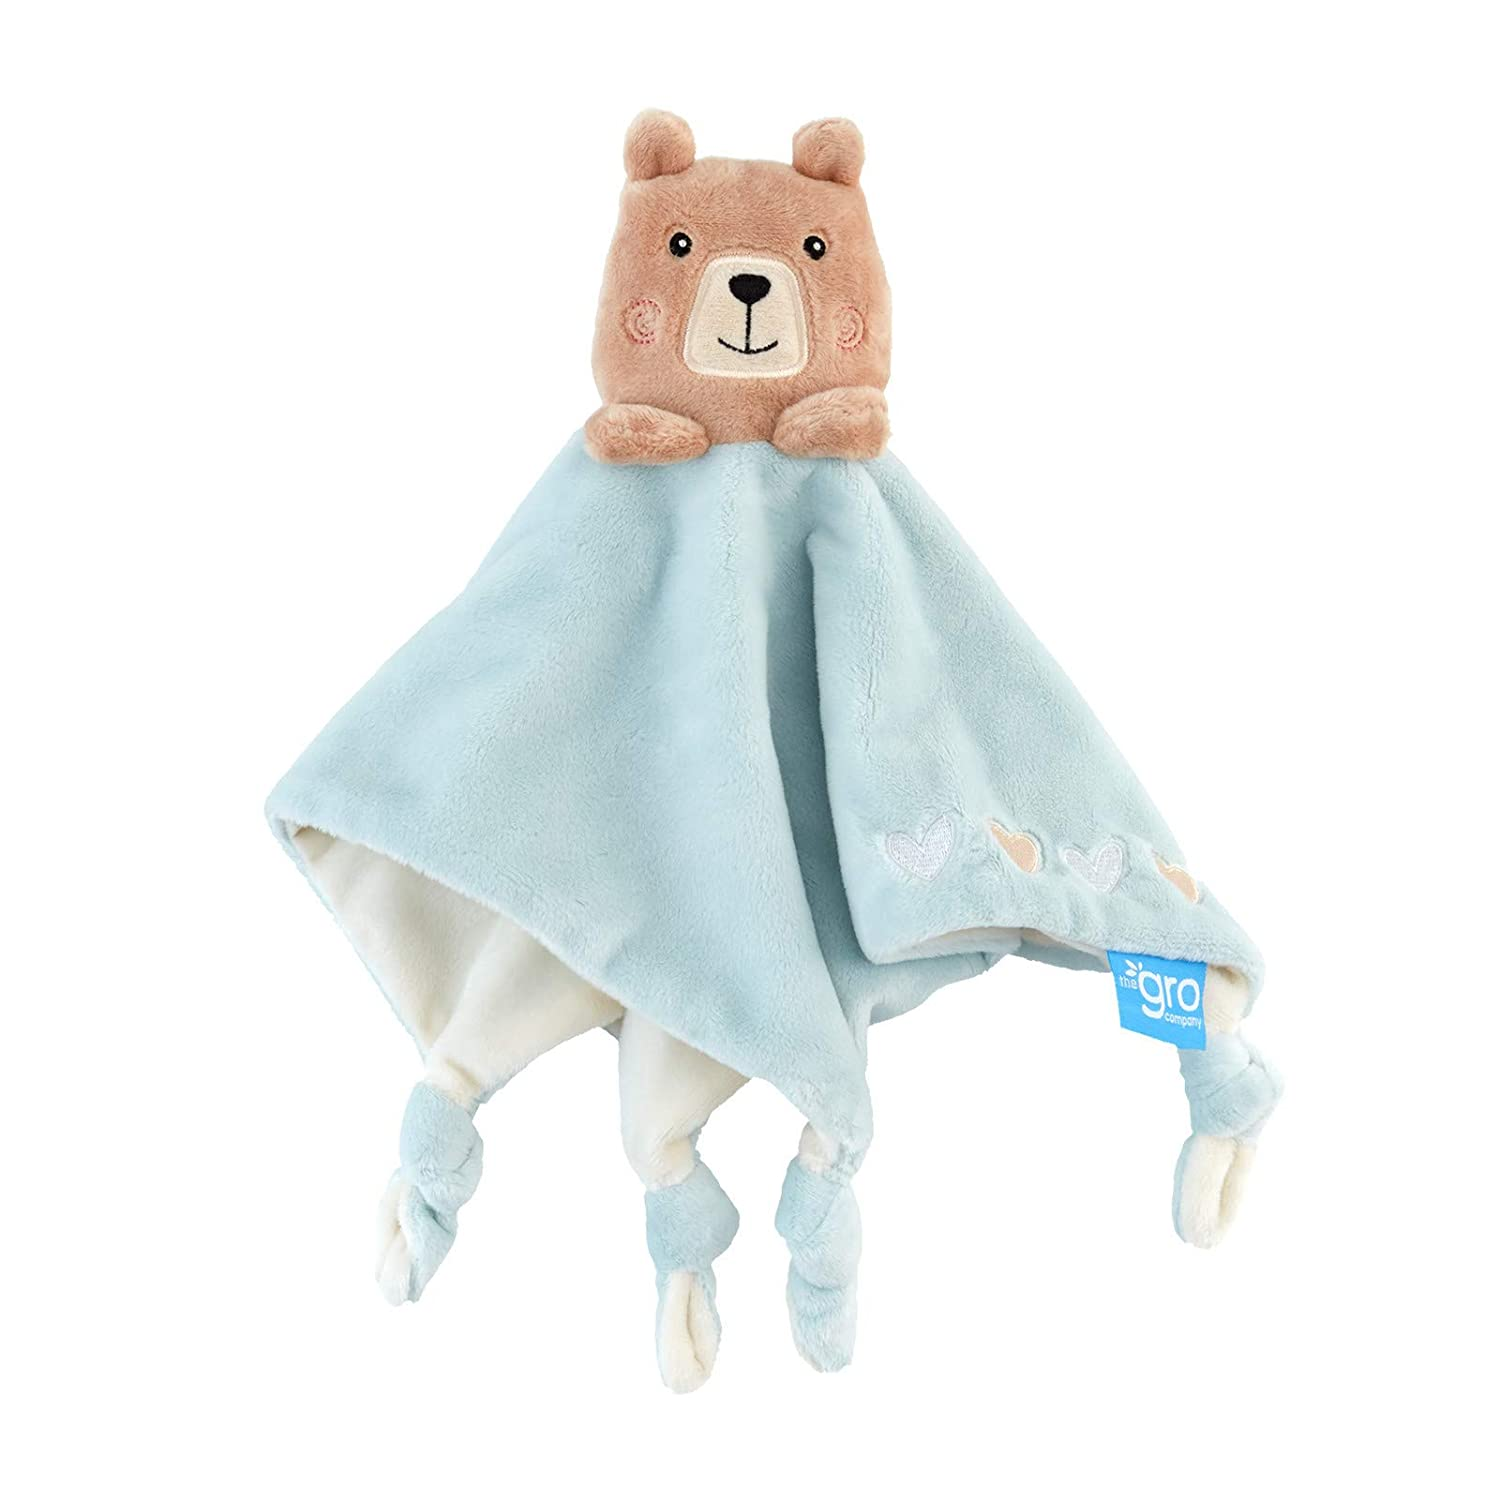 Grofriends Comforter Bennie The Bear Soft Toy Mayborn Group AKA0052